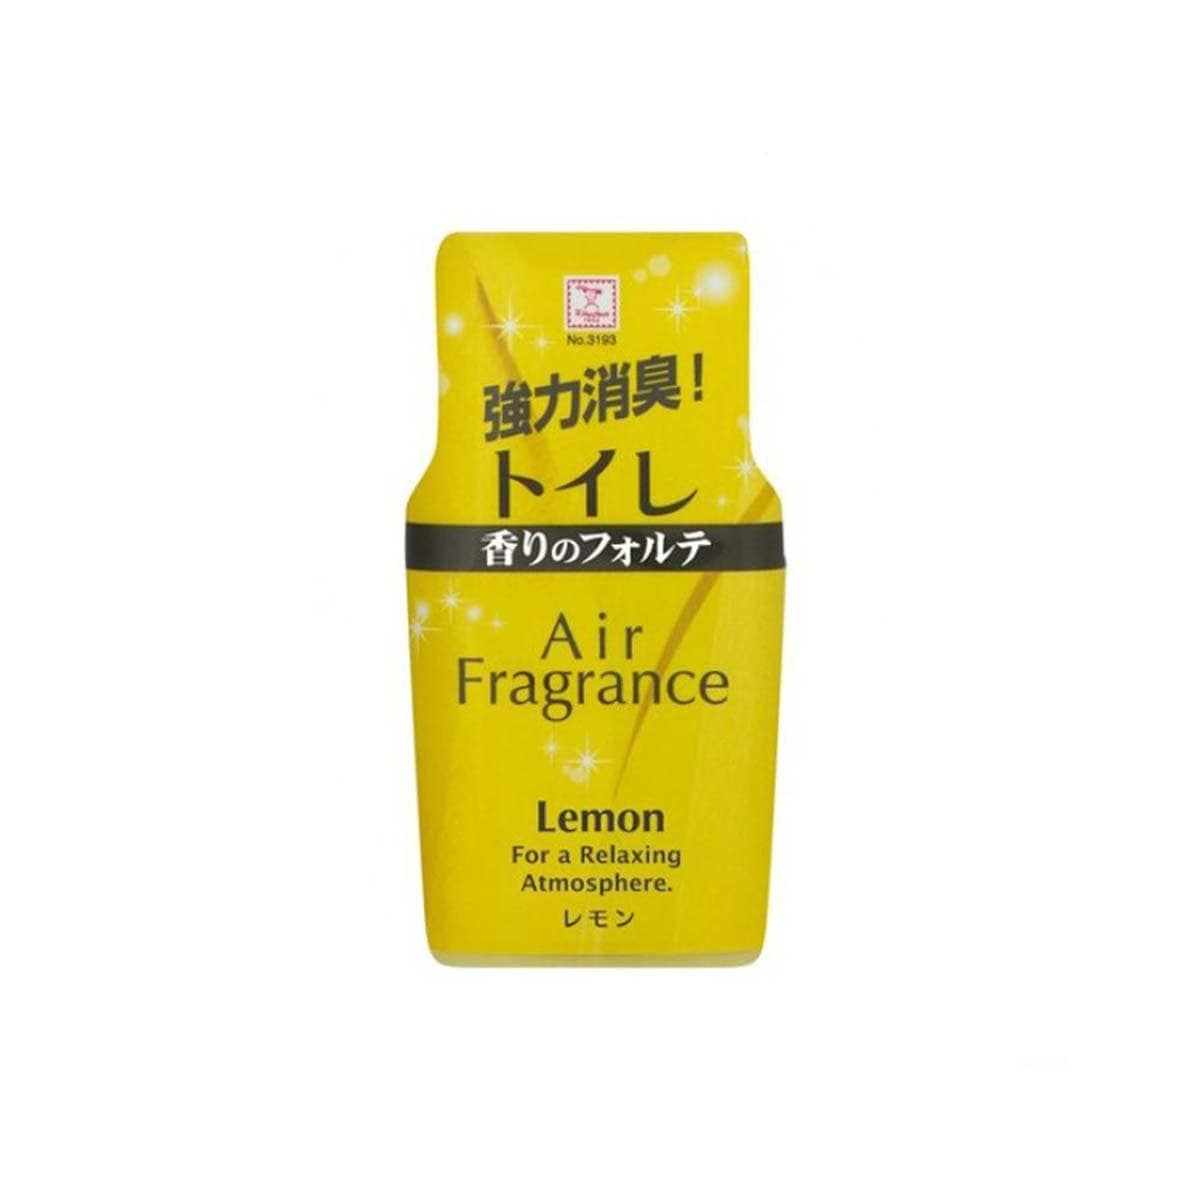 Japanese Deodorant For Toilet Lemon Scent